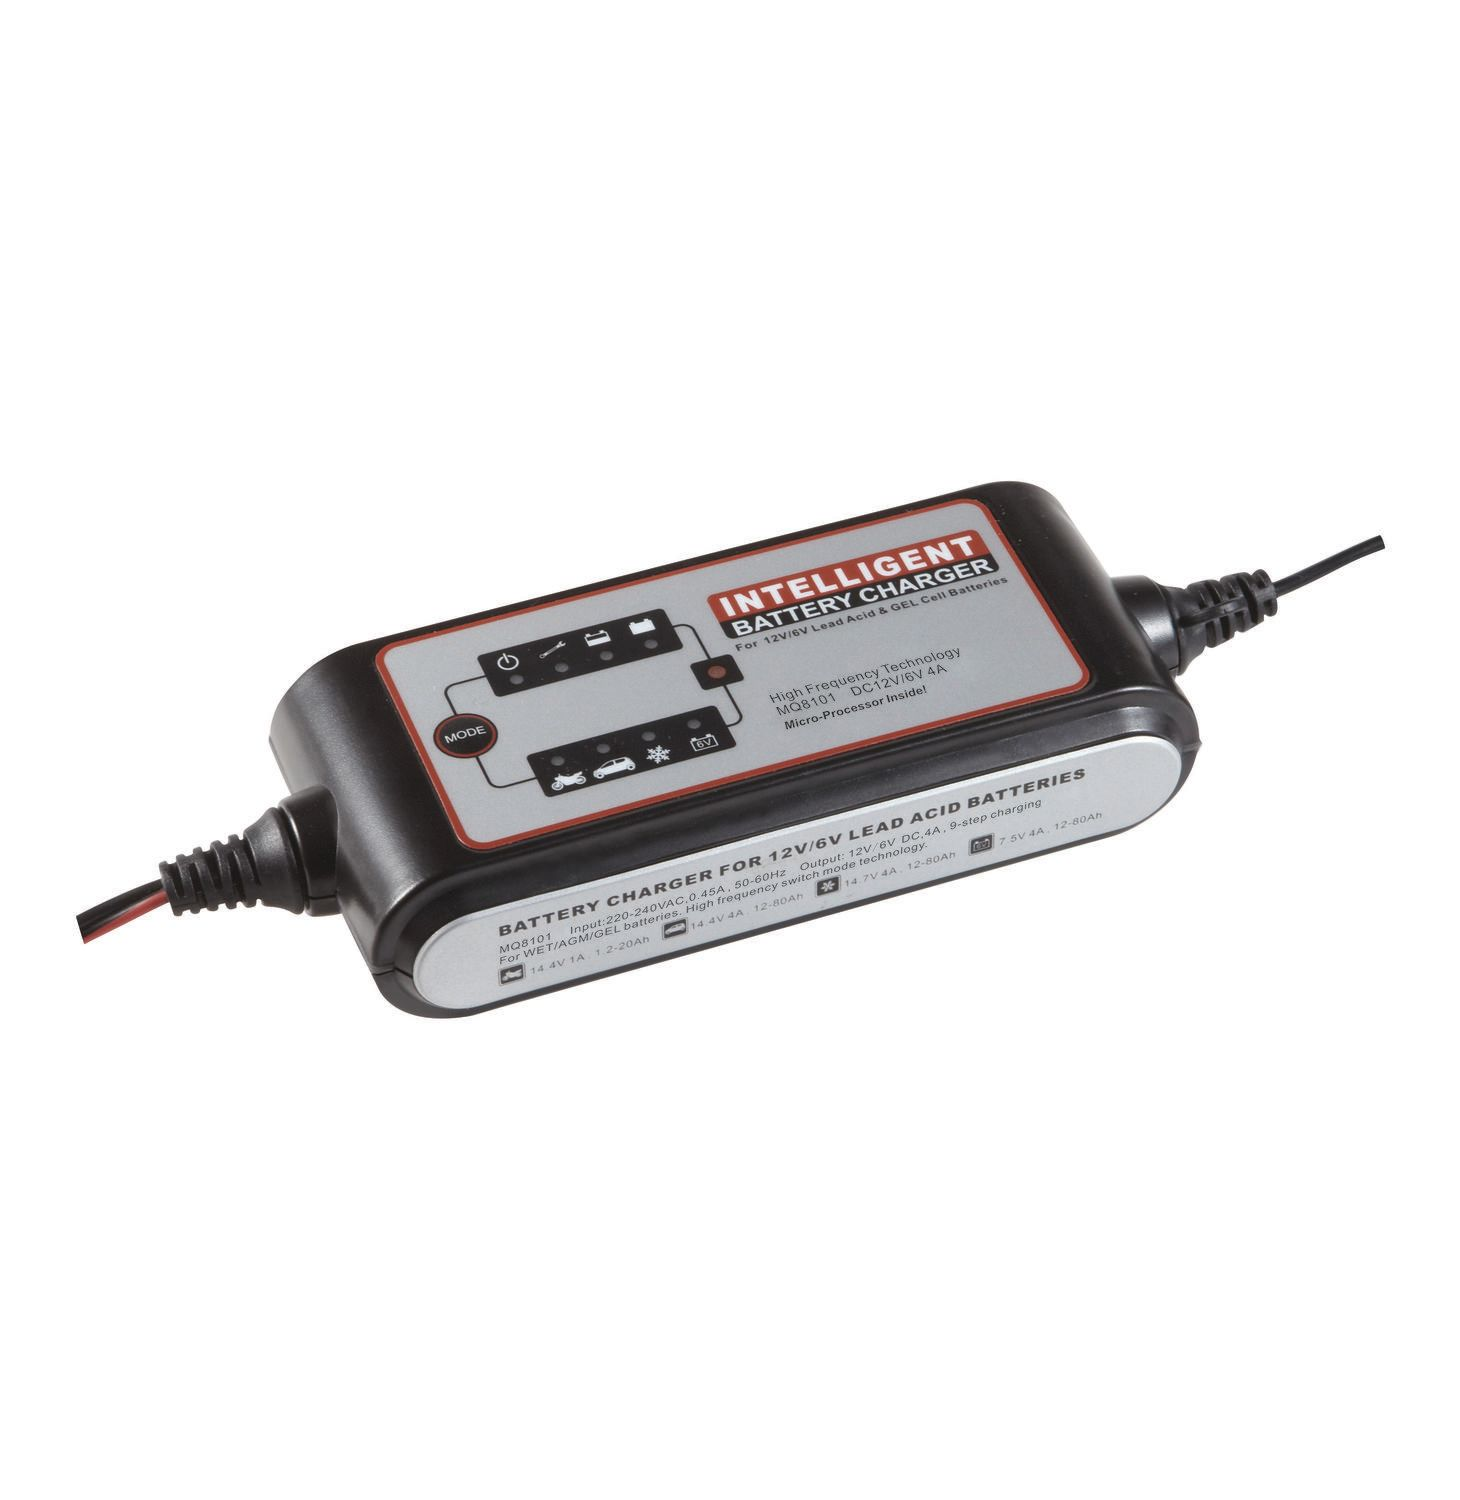 moto-quip--4-amp-intelligent-battery-charger-mq8101